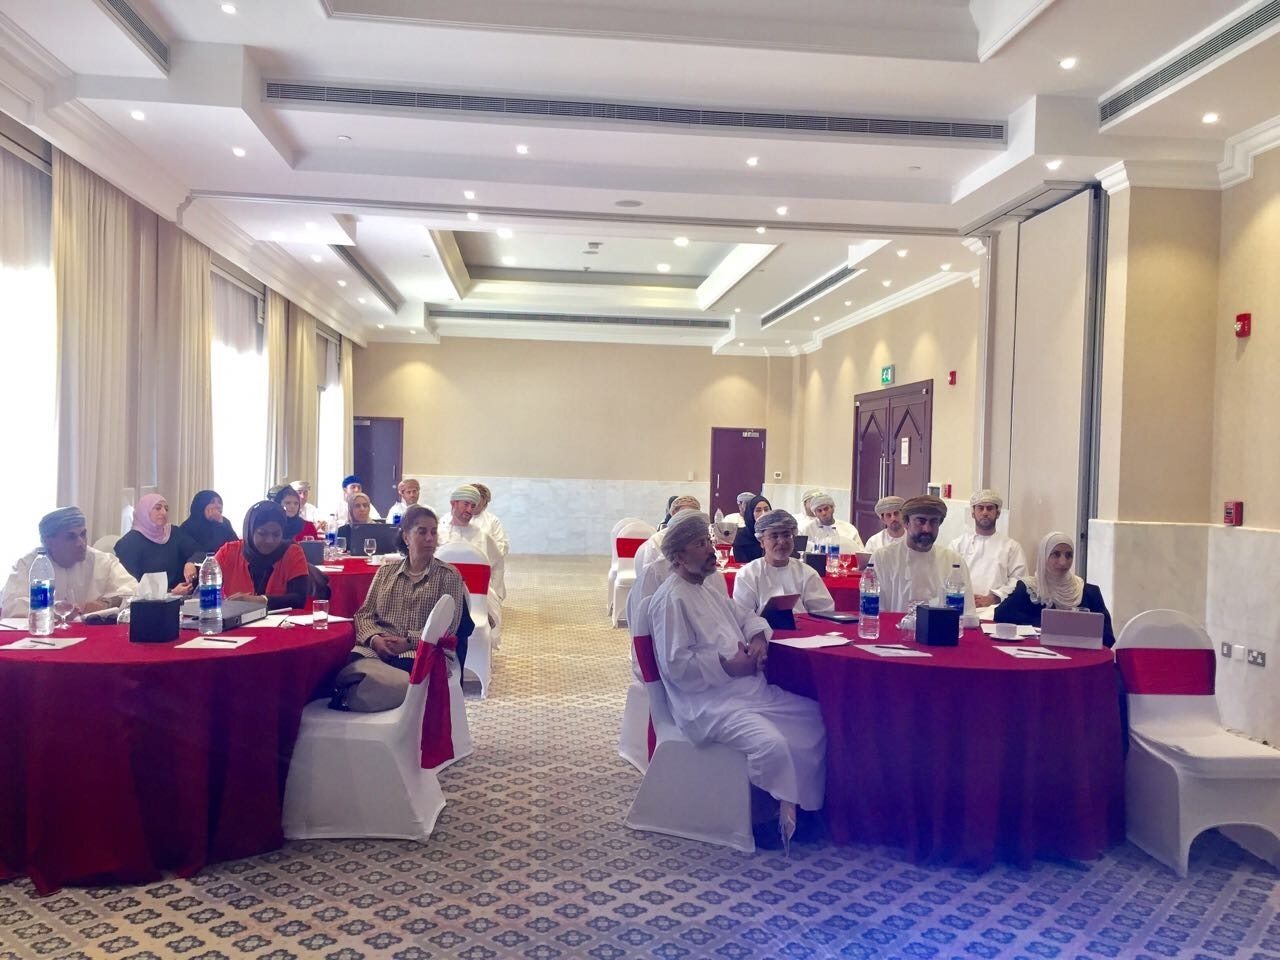 2017, 18 - 20 October: Organisational design and structure for The Research Council of Oman  2018-11-15